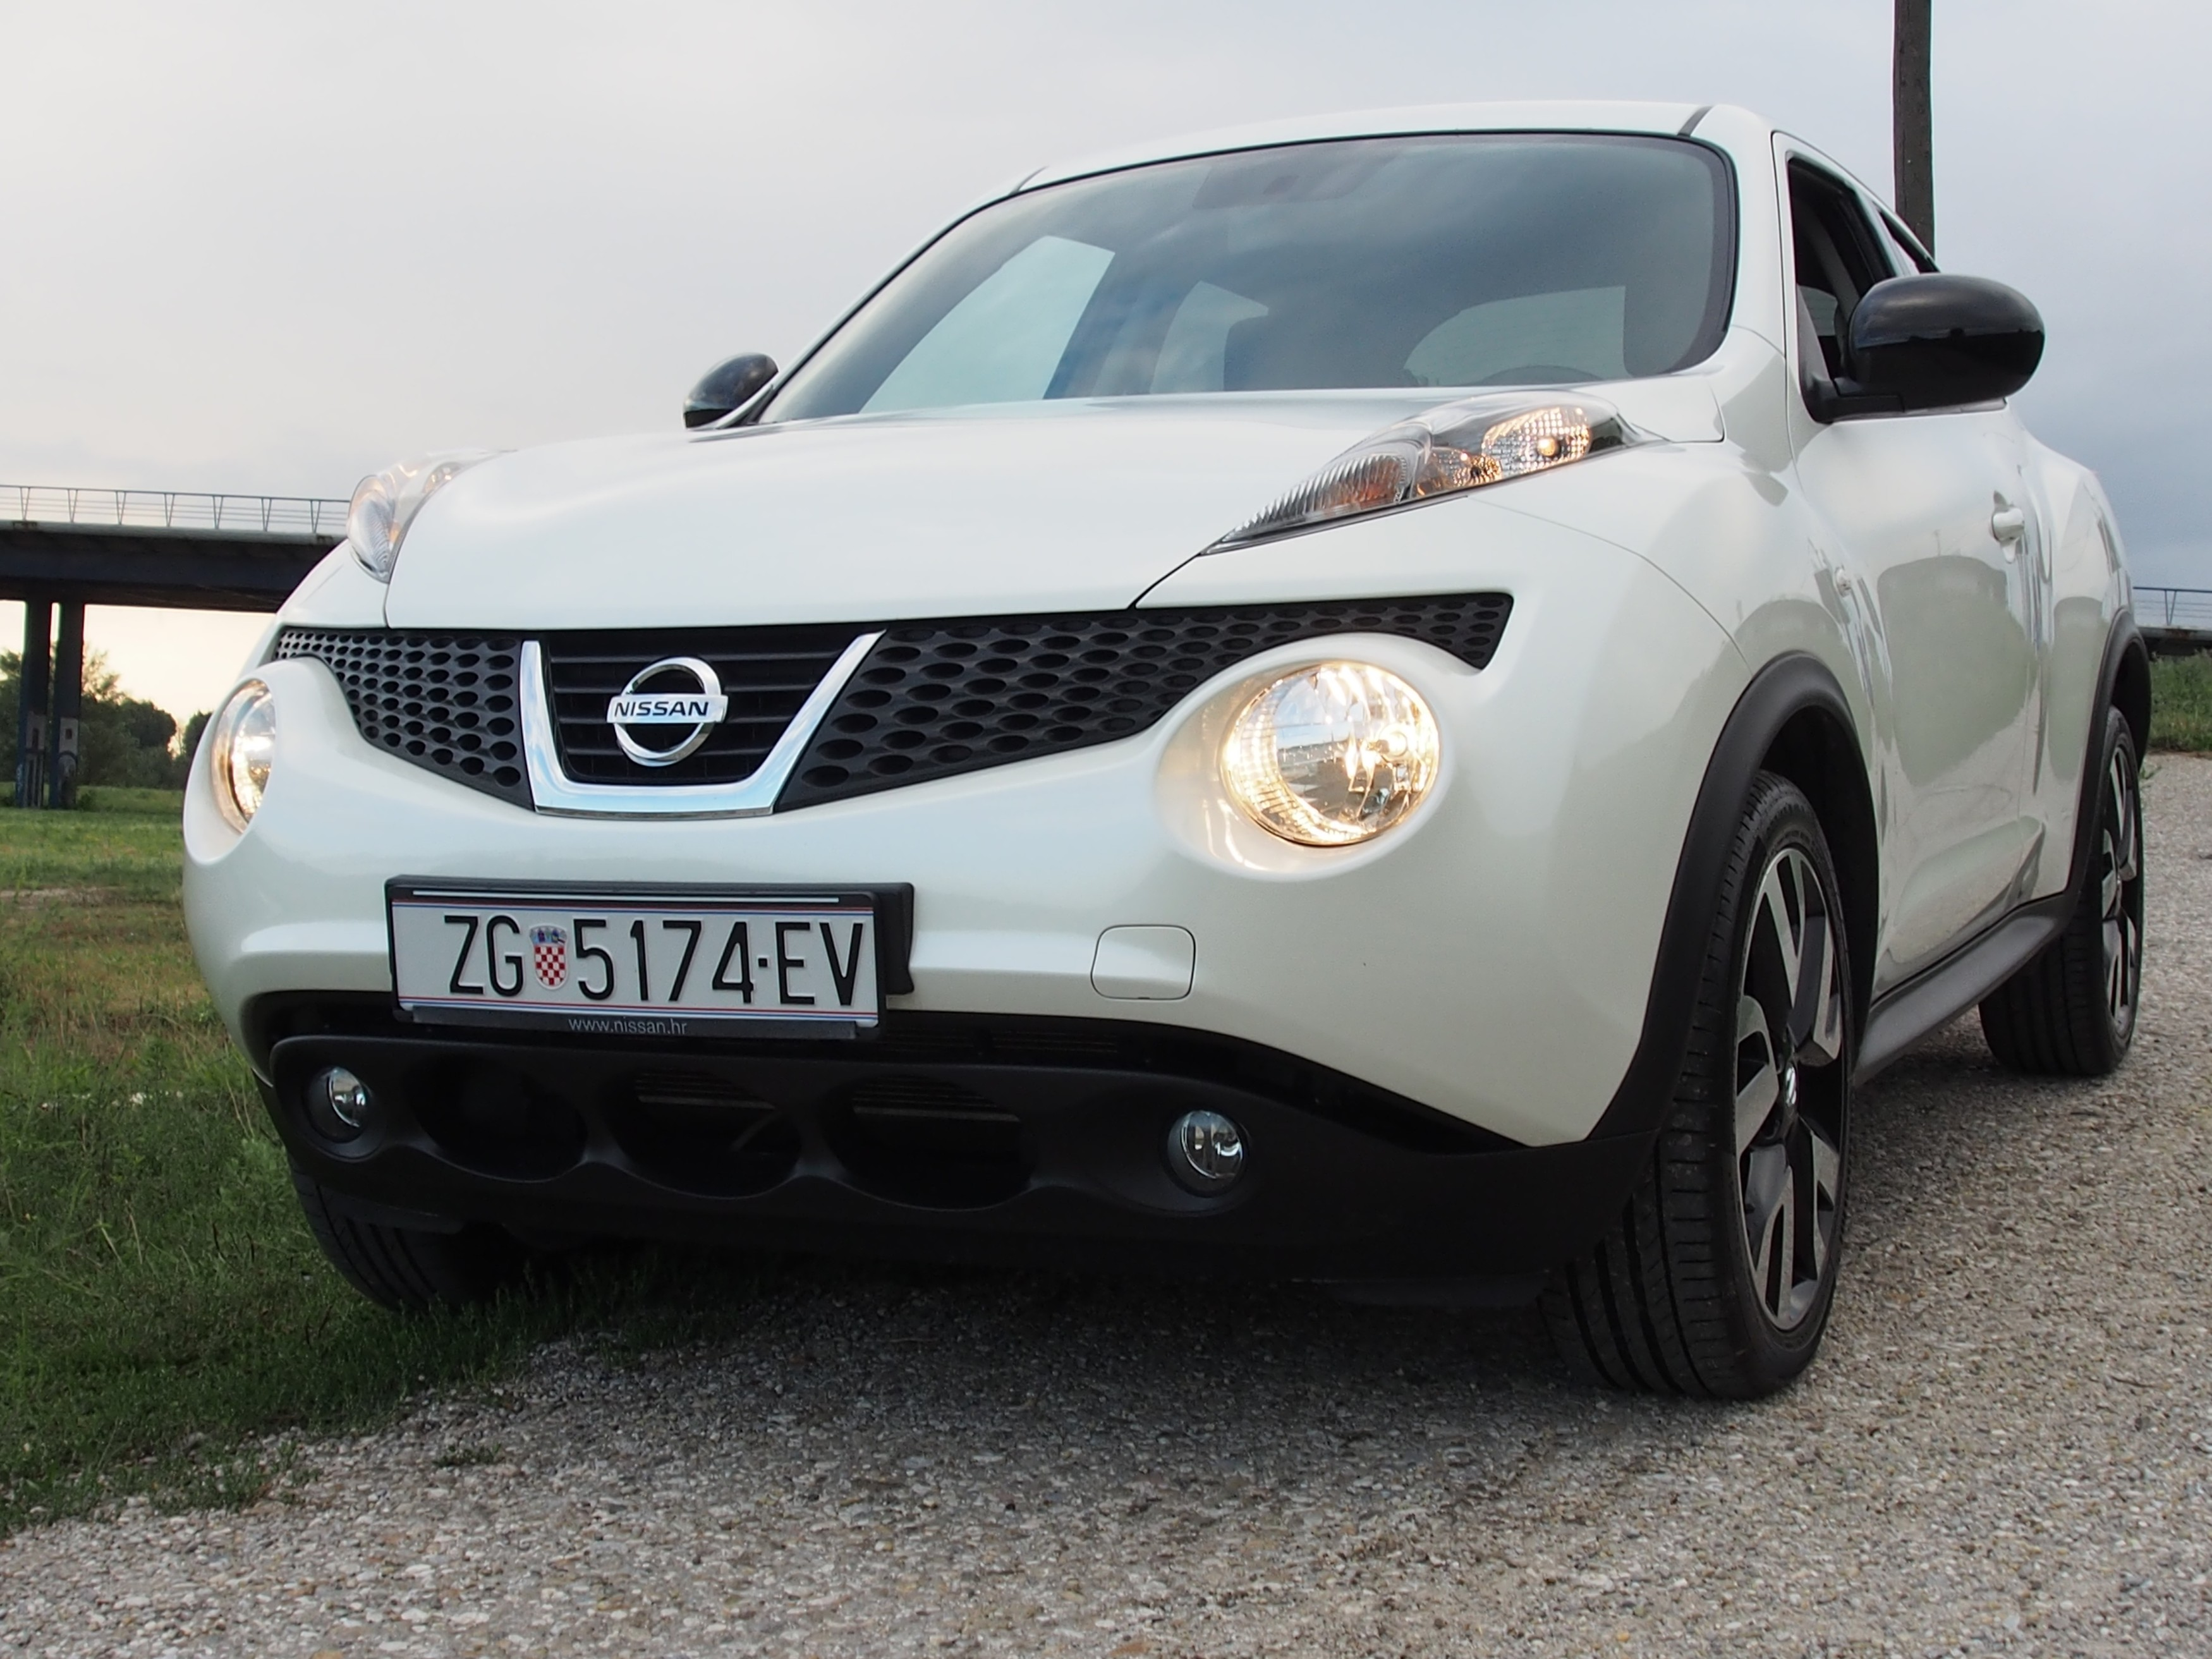 nissan juke 1 6 n tec test testirali smo testovi vidiauto vidiauto. Black Bedroom Furniture Sets. Home Design Ideas